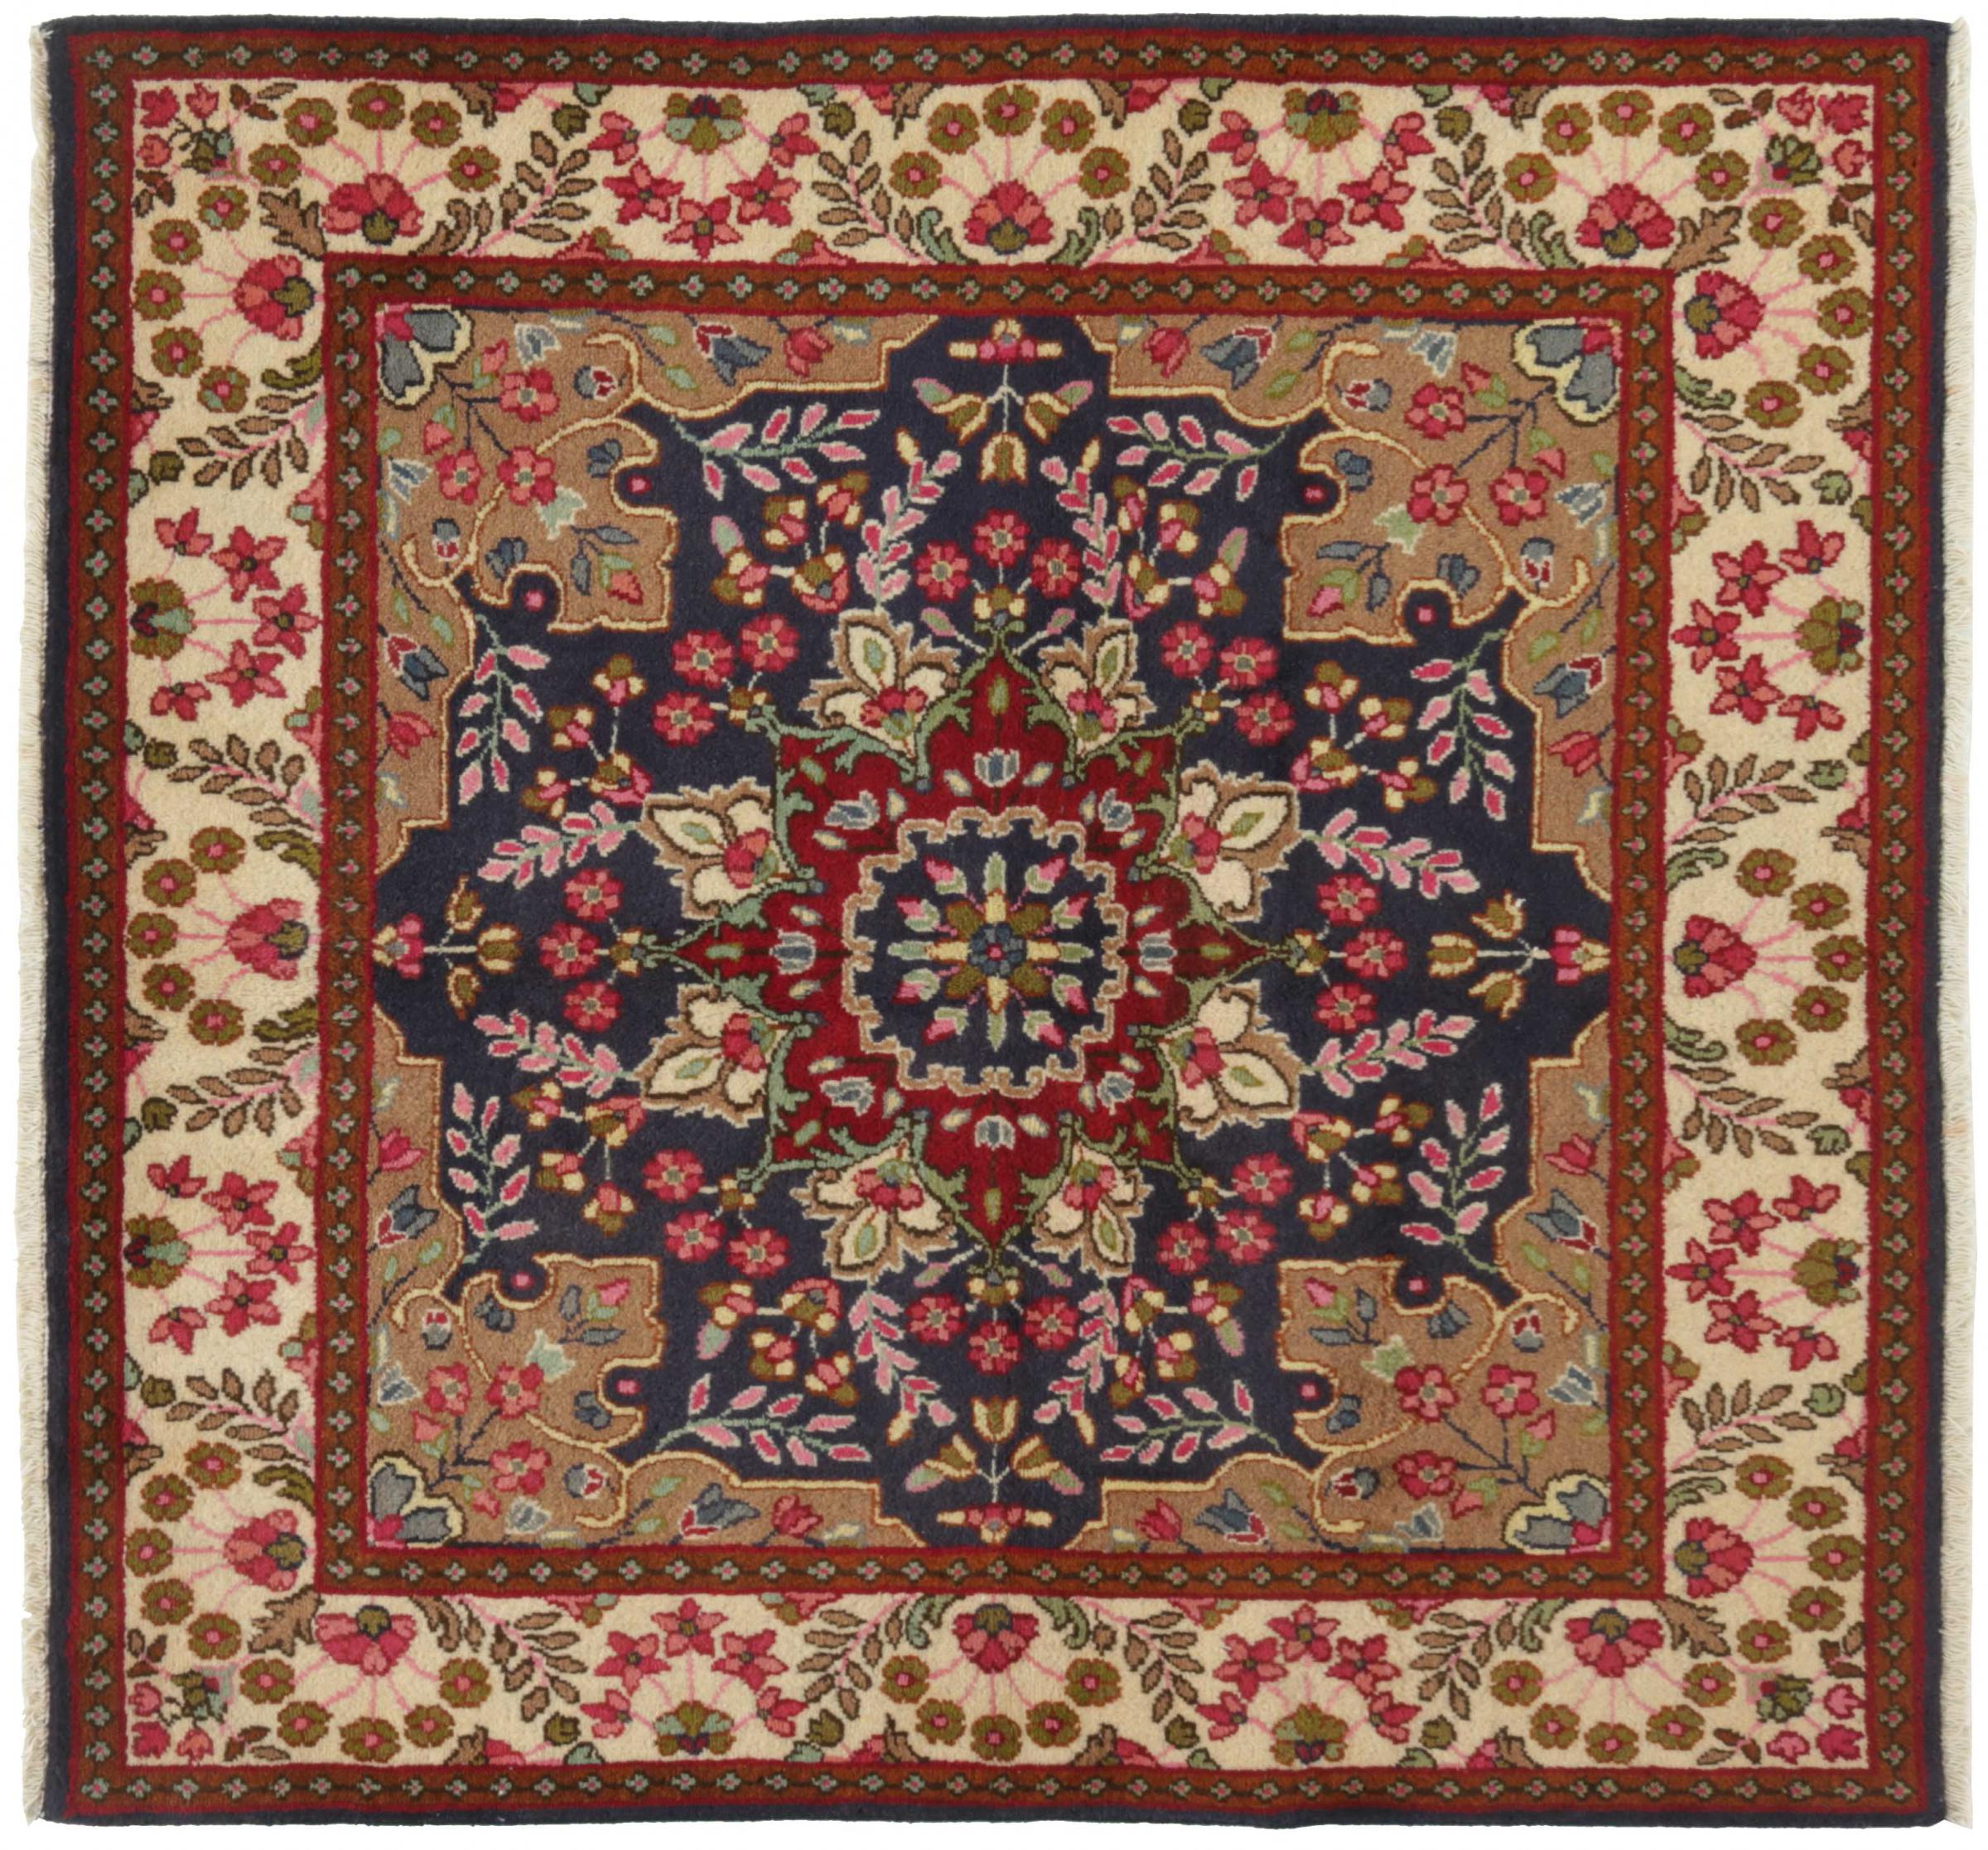 kerman tapis 152x150 id36336 achetez votre tapis orientaux kerman 150x150 naintrading. Black Bedroom Furniture Sets. Home Design Ideas